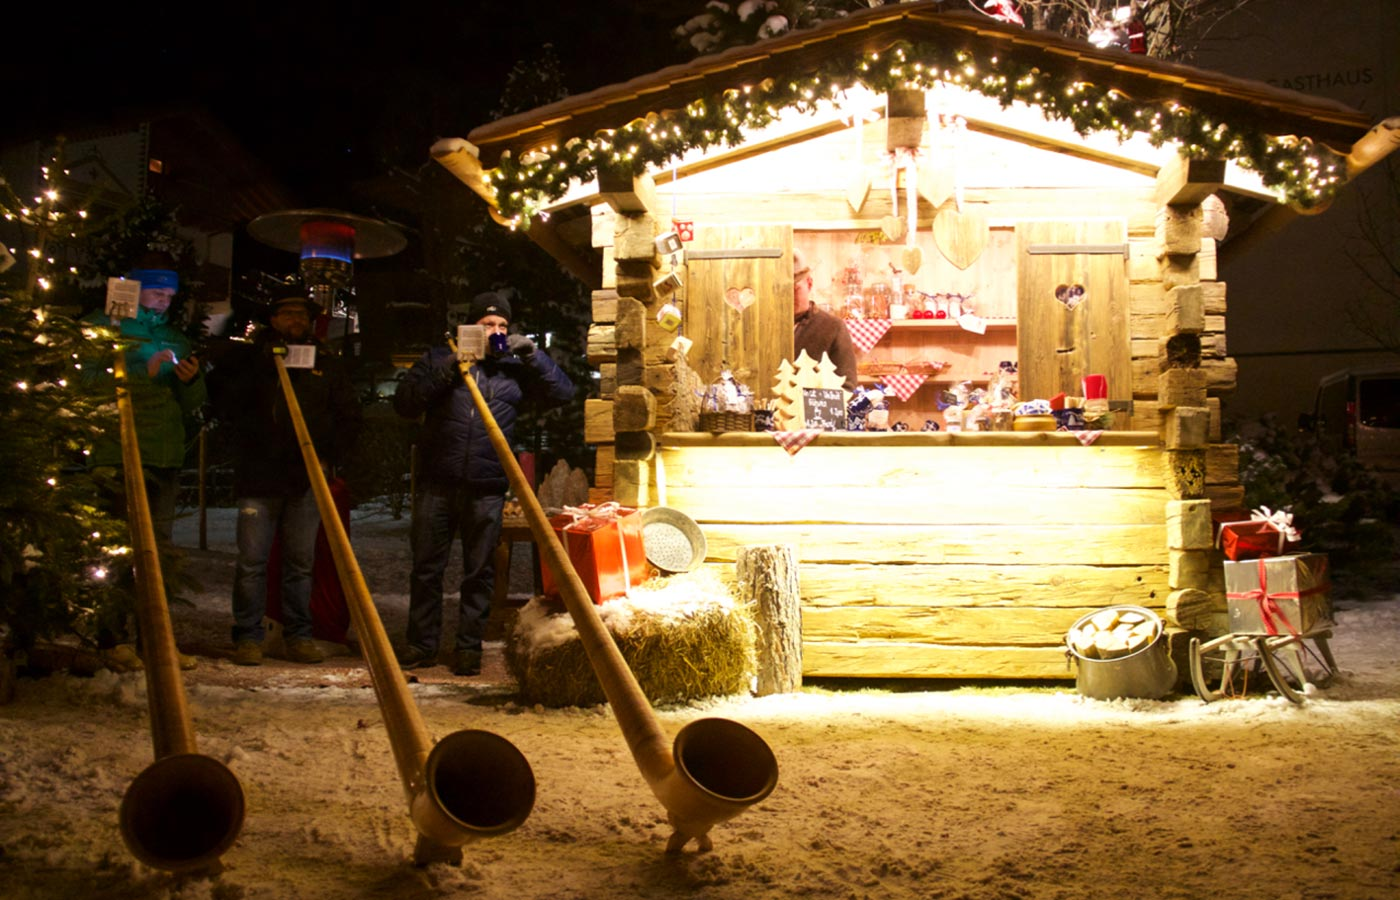 Alphorn players next to a Christmas stand in the snow